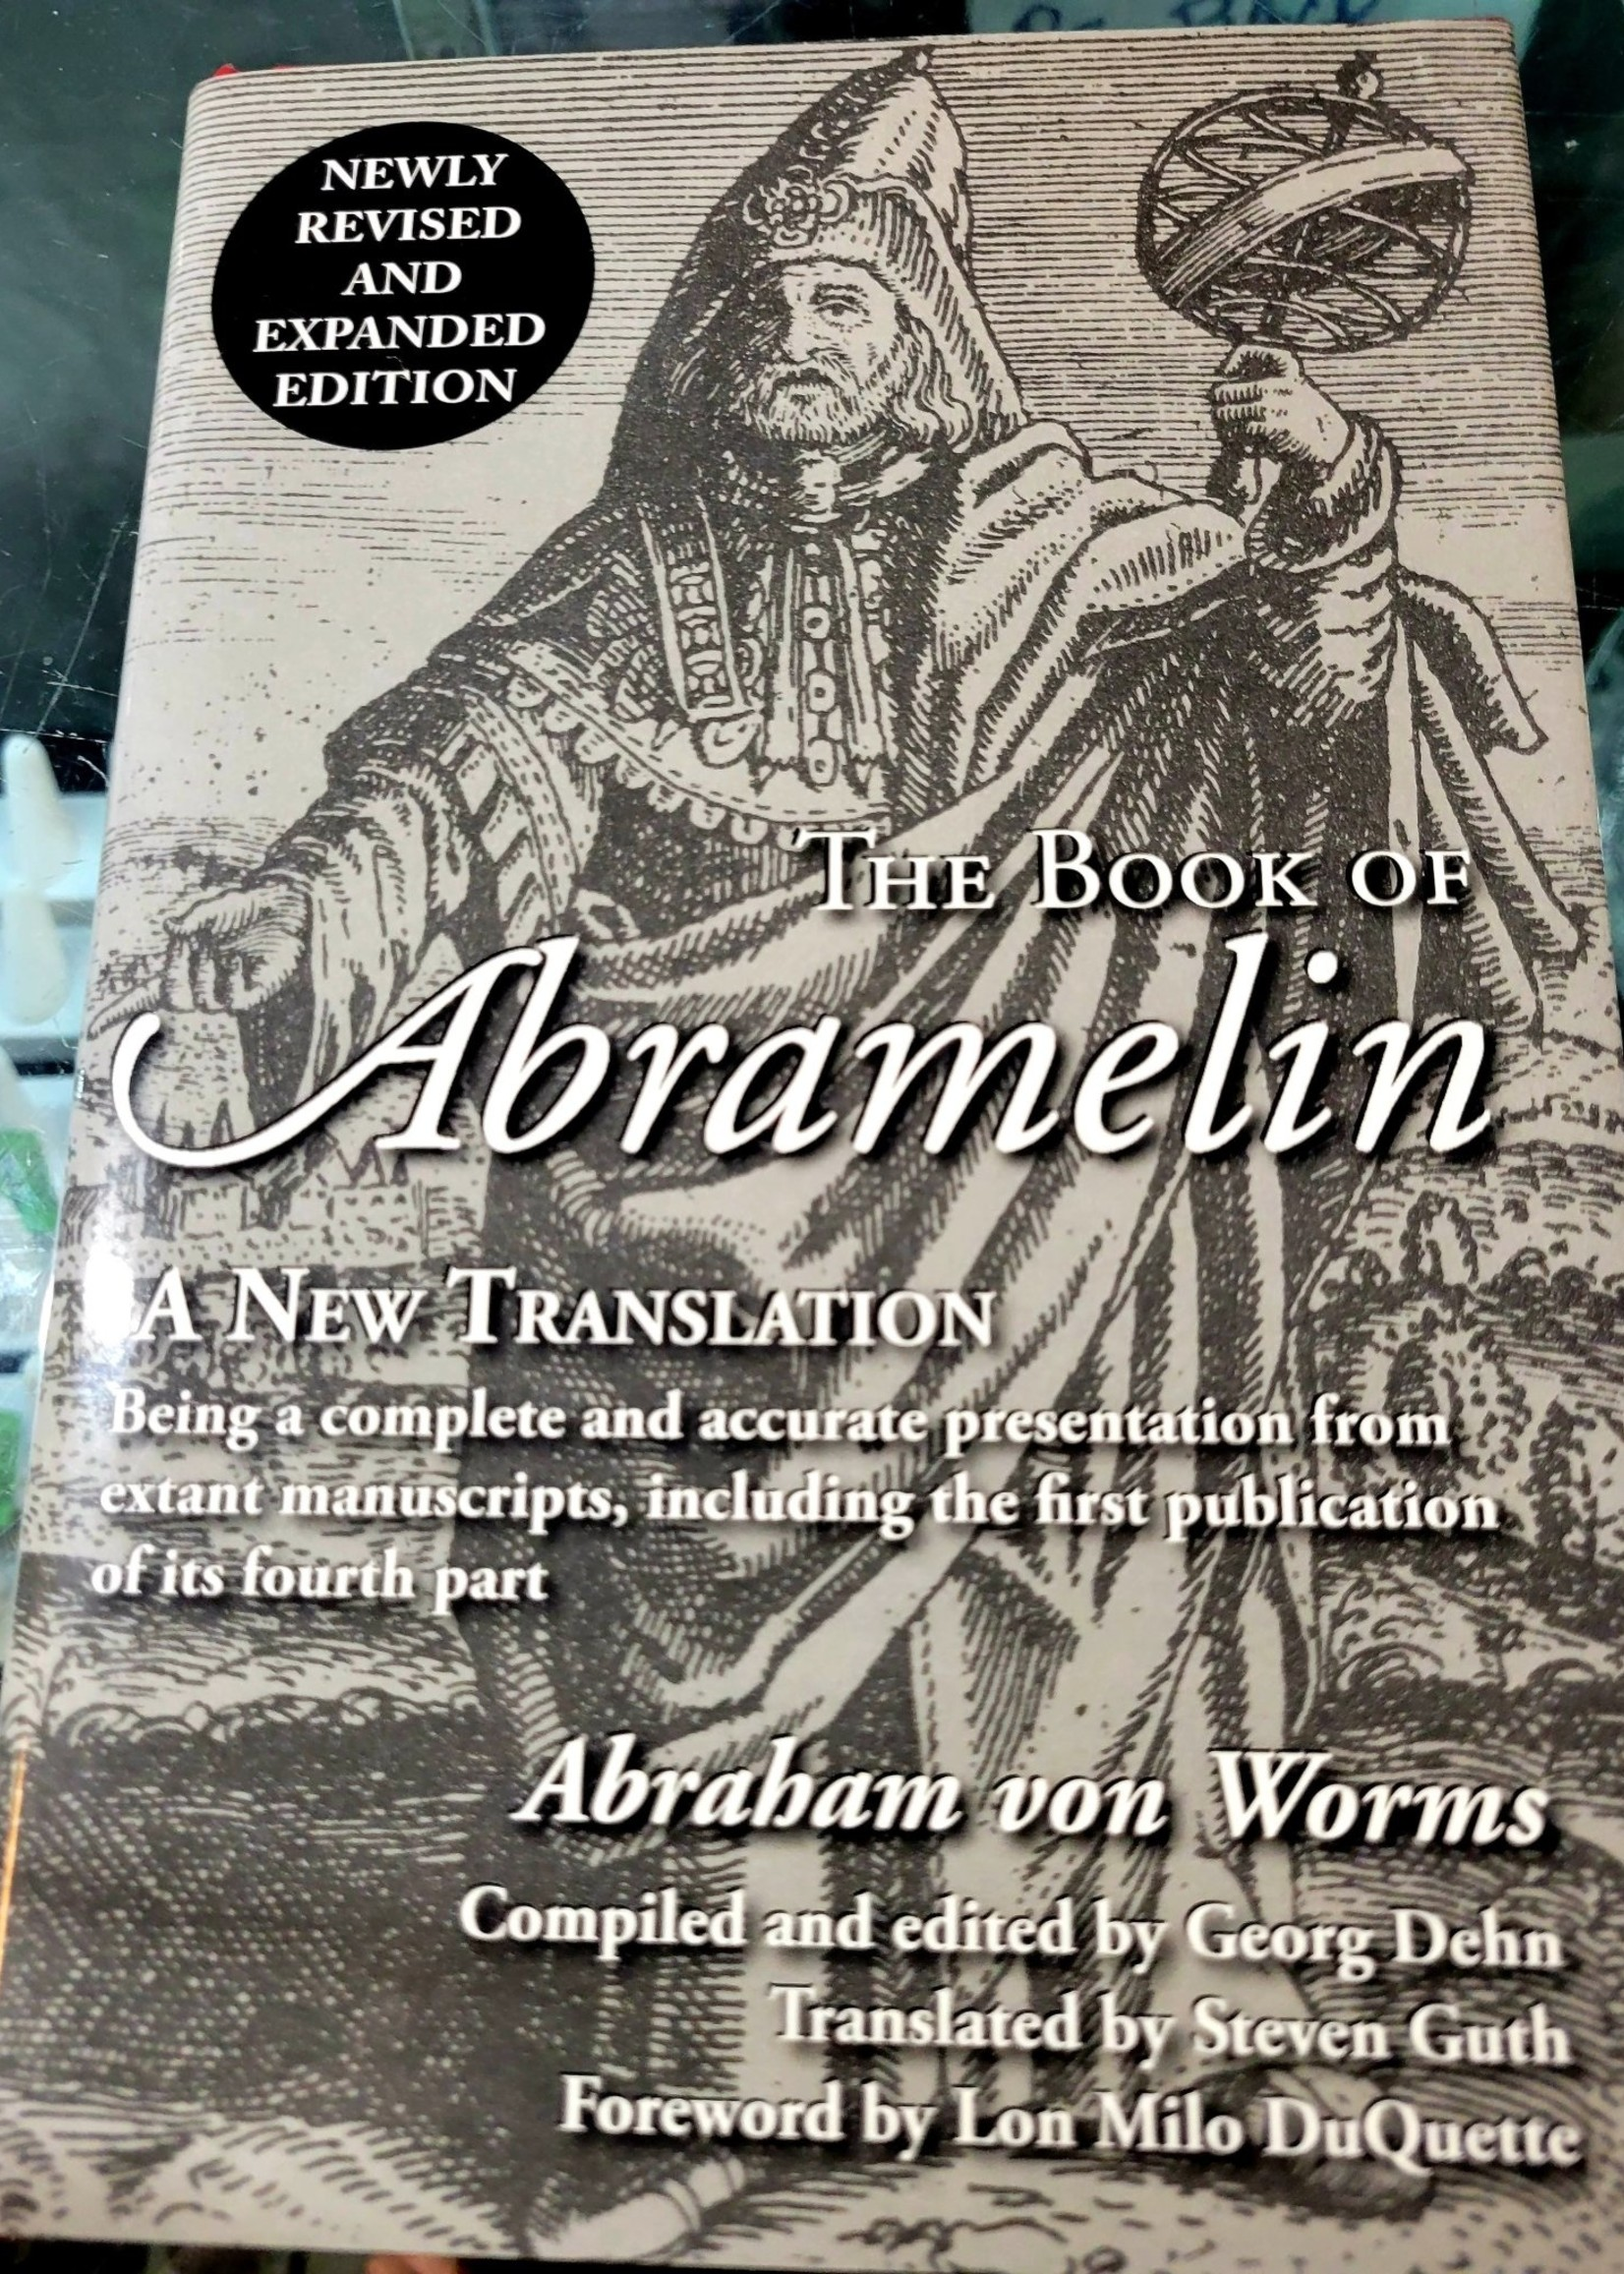 The Book of Abramelin A New Translation - Revised and Expanded Abraham von Worms, Edited by Georg Dehn, Translated by Steven Guth